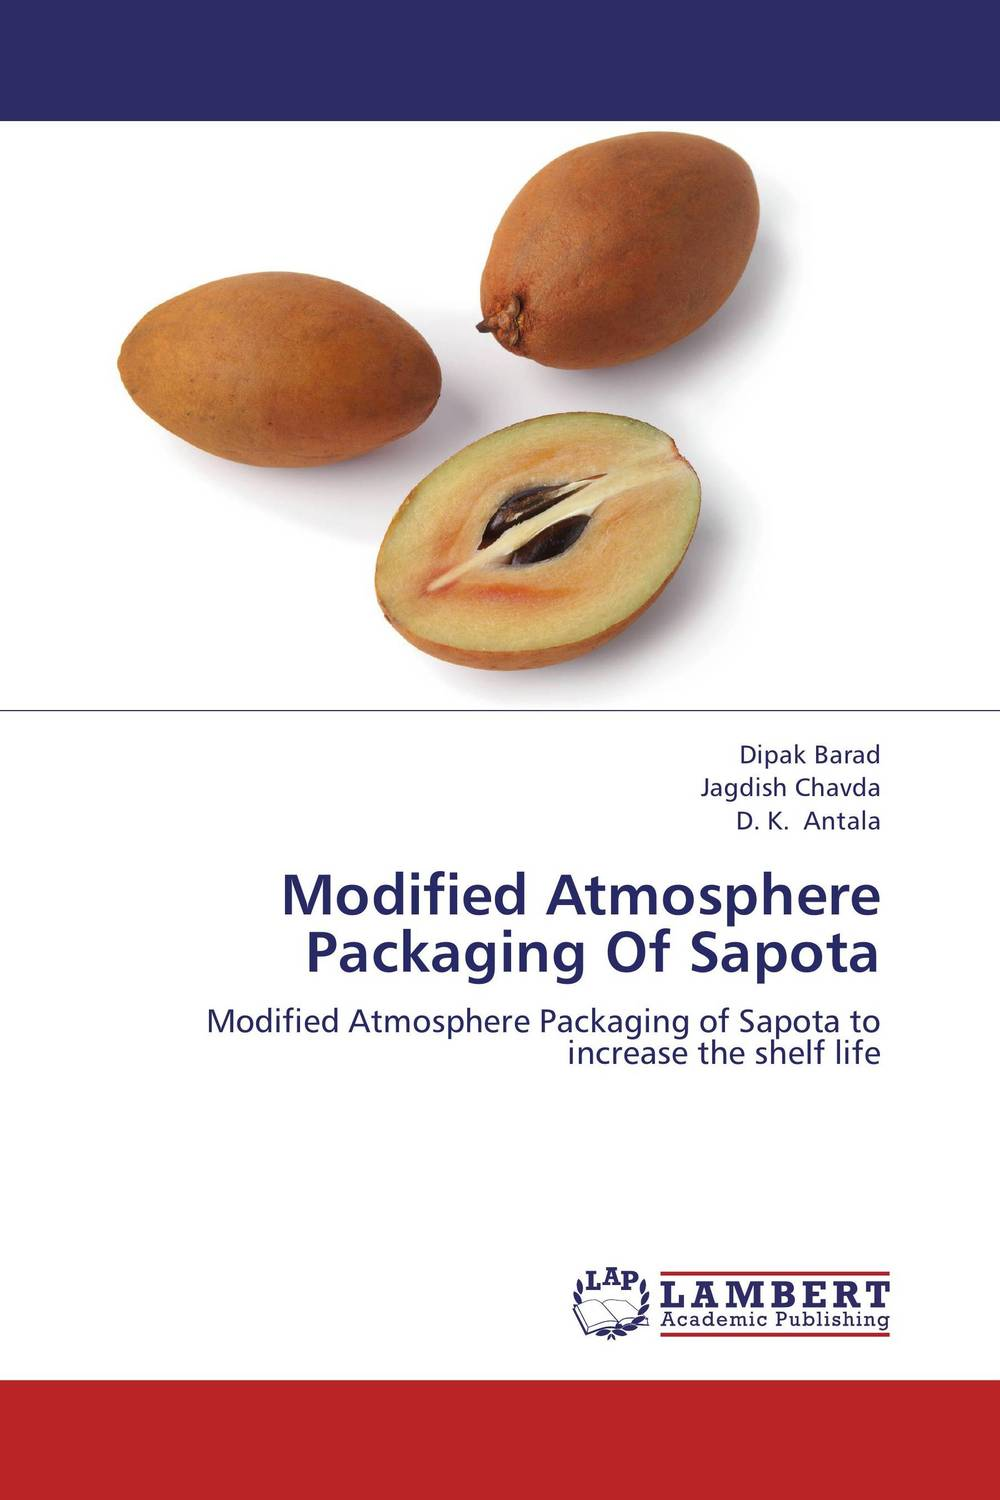 Modified Atmosphere Packaging Of Sapota